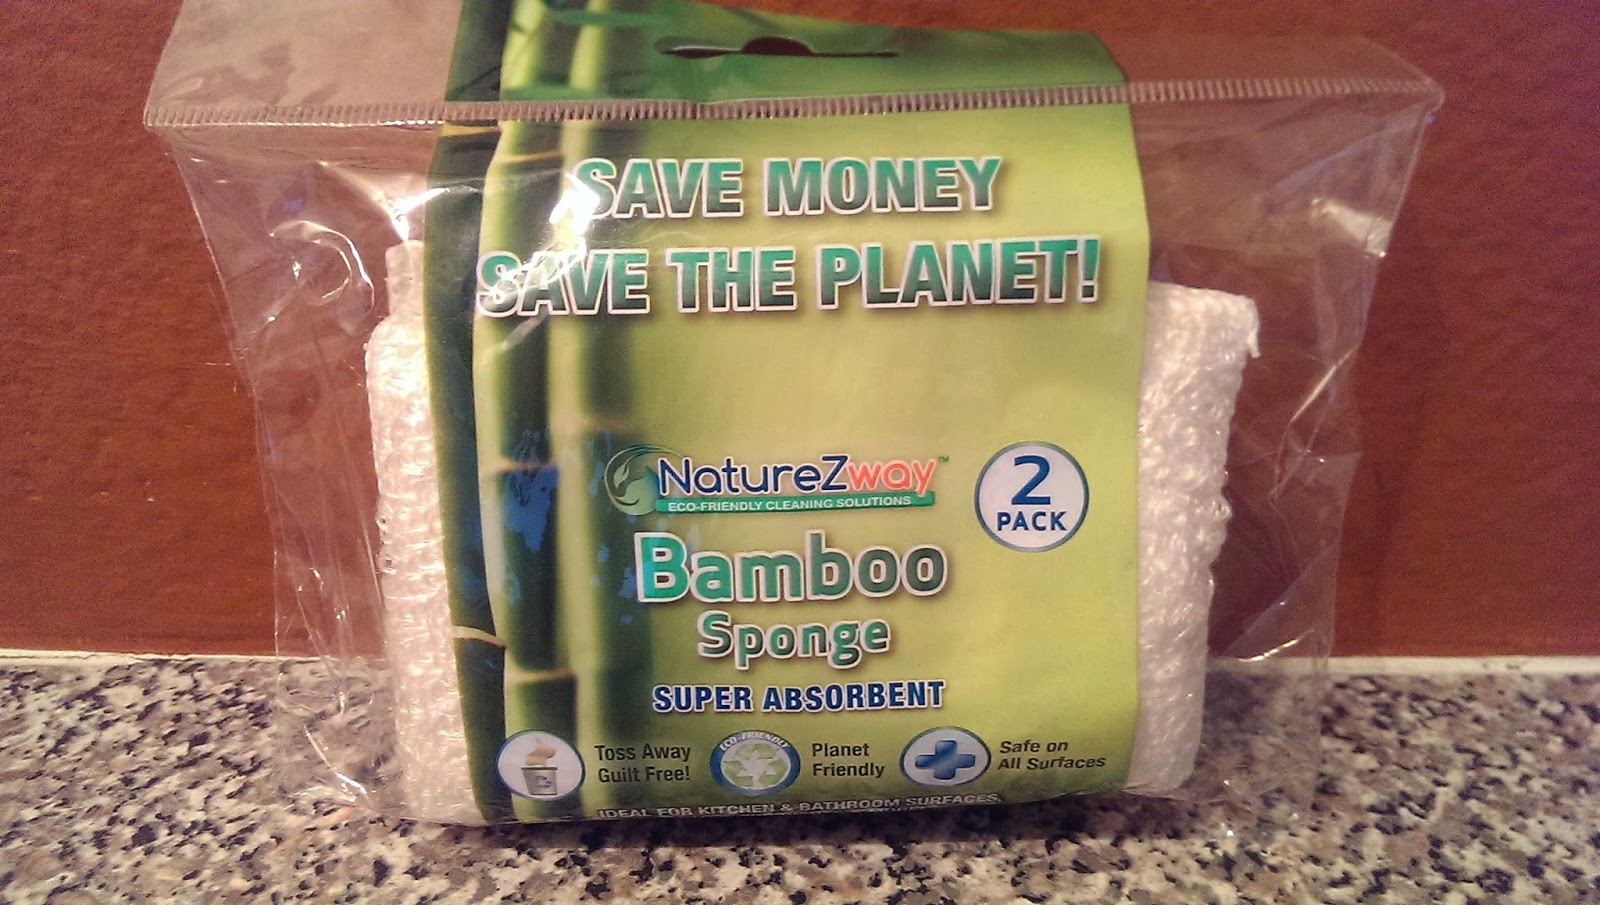 Bamboo%2Bcleaning%2Bsupplies Keeping My Home Clean with NatureZway Eco Friendly Products - NatureZway Review